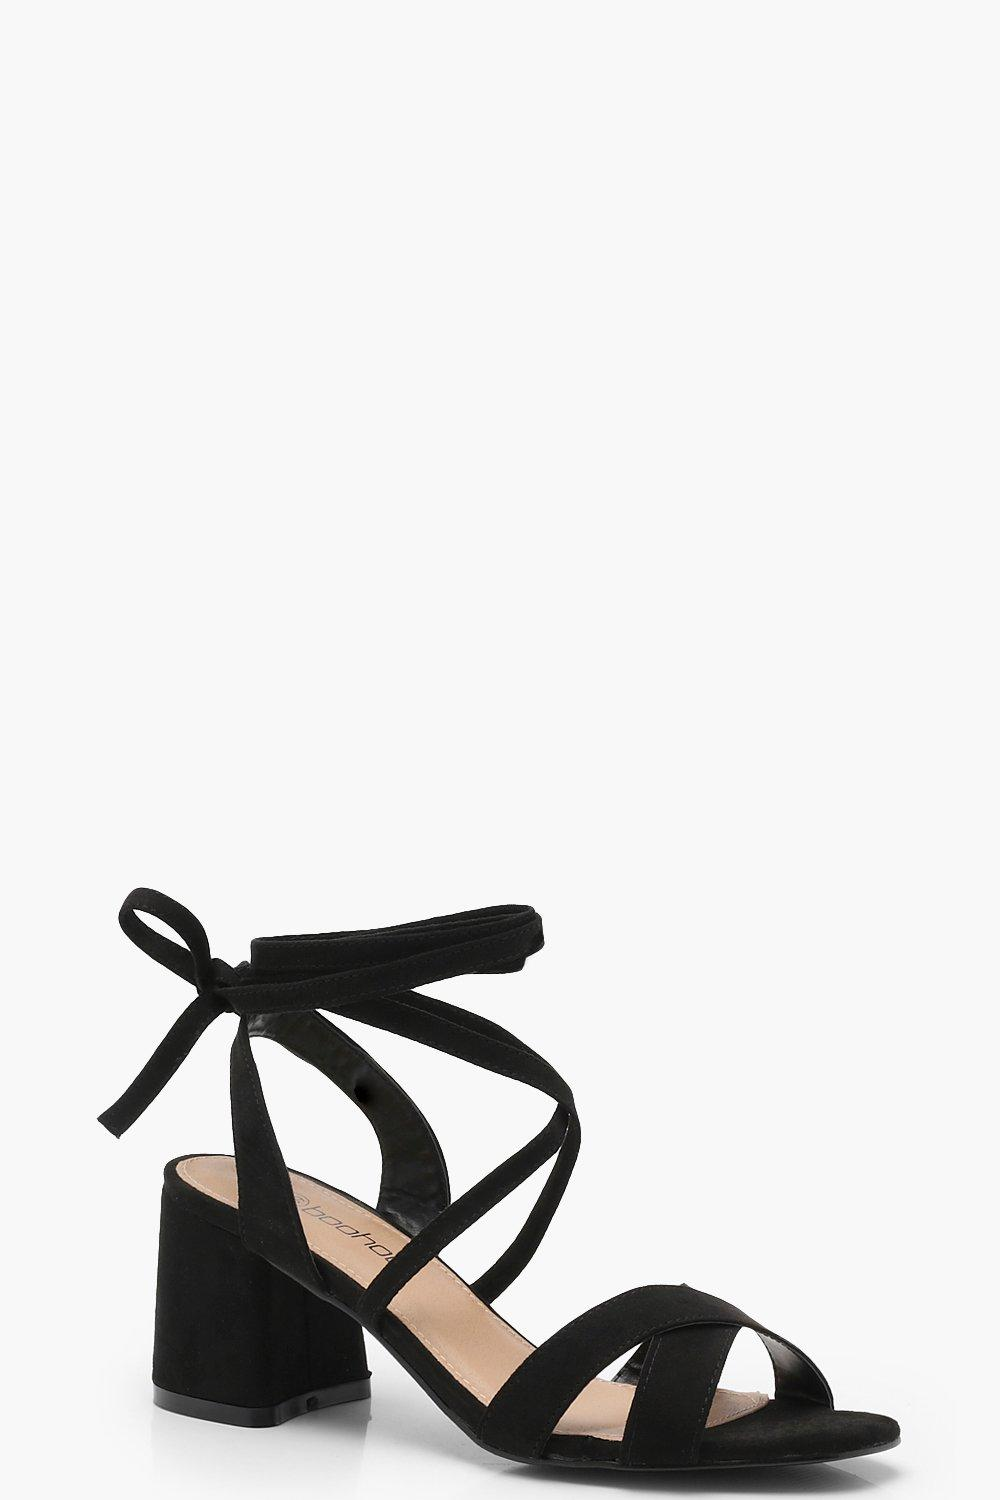 boohoo Womens Extra Wide Fit Cross Strap Ankle Wrap Heels - Black - 5, Black